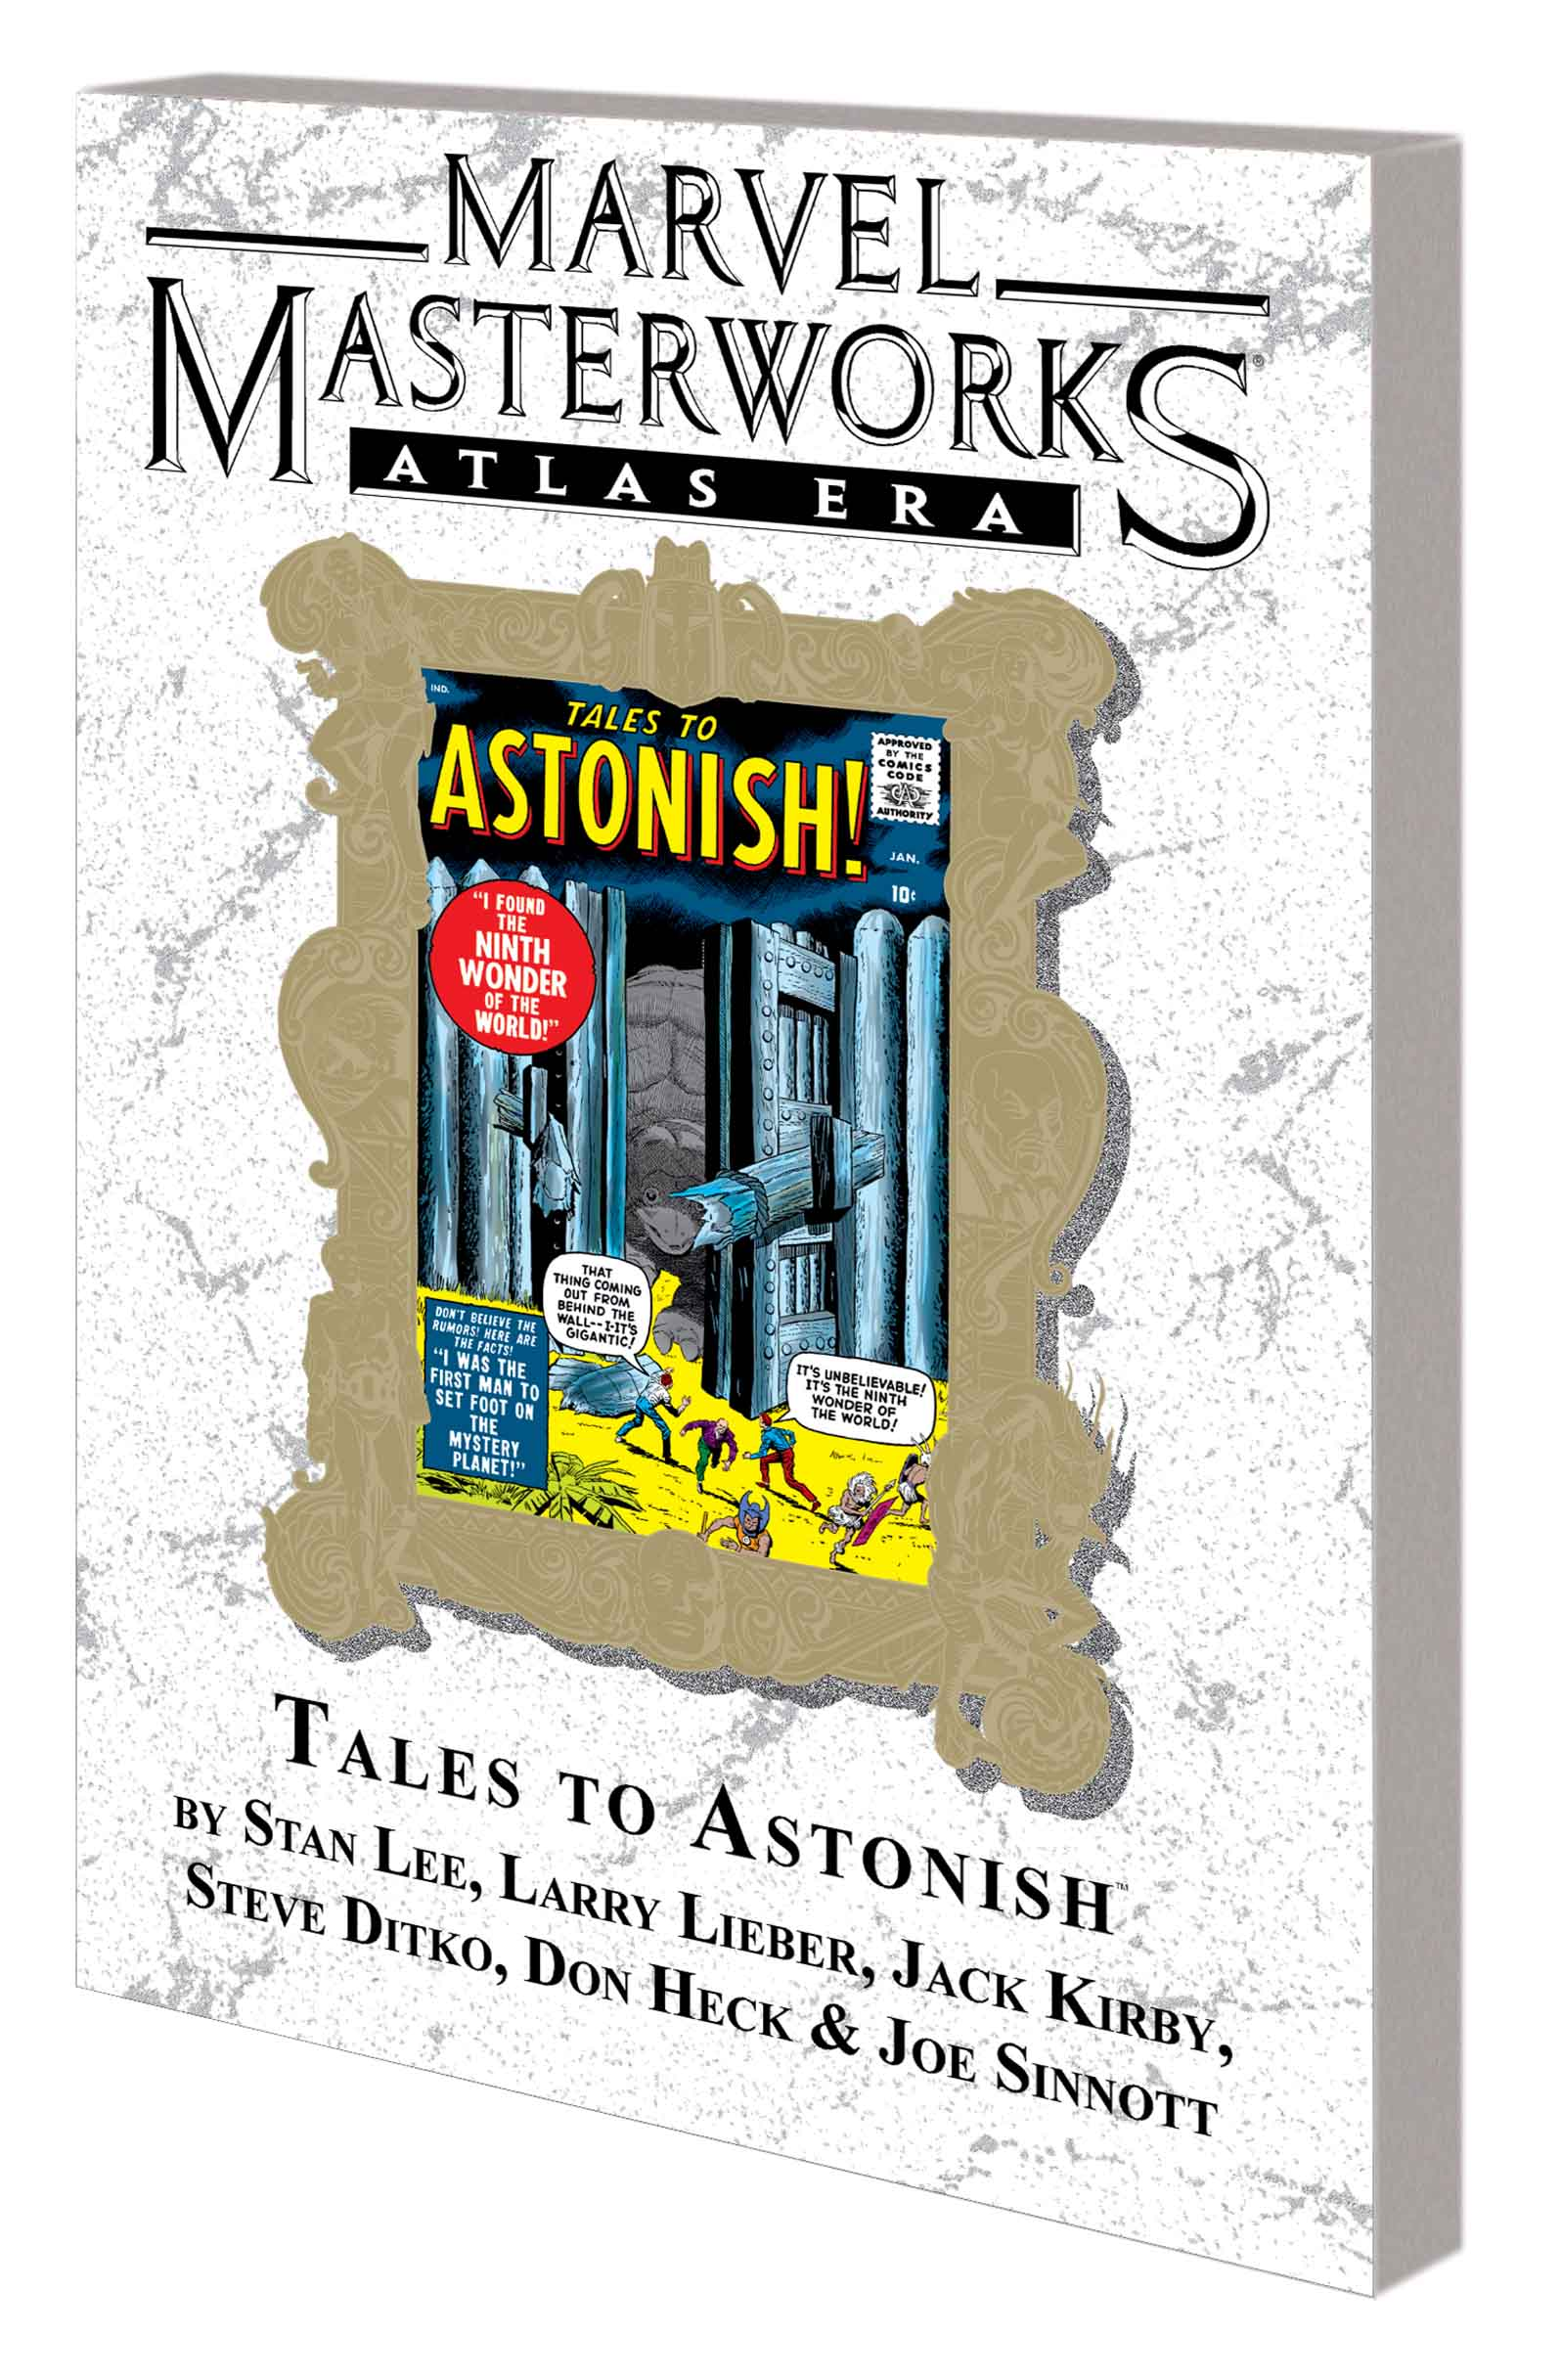 MARVEL MASTERWORKS: ATLAS ERA TALES TO ASTONISH VOL. 1 TPB VARIANT (DM ONLY) (Trade Paperback)